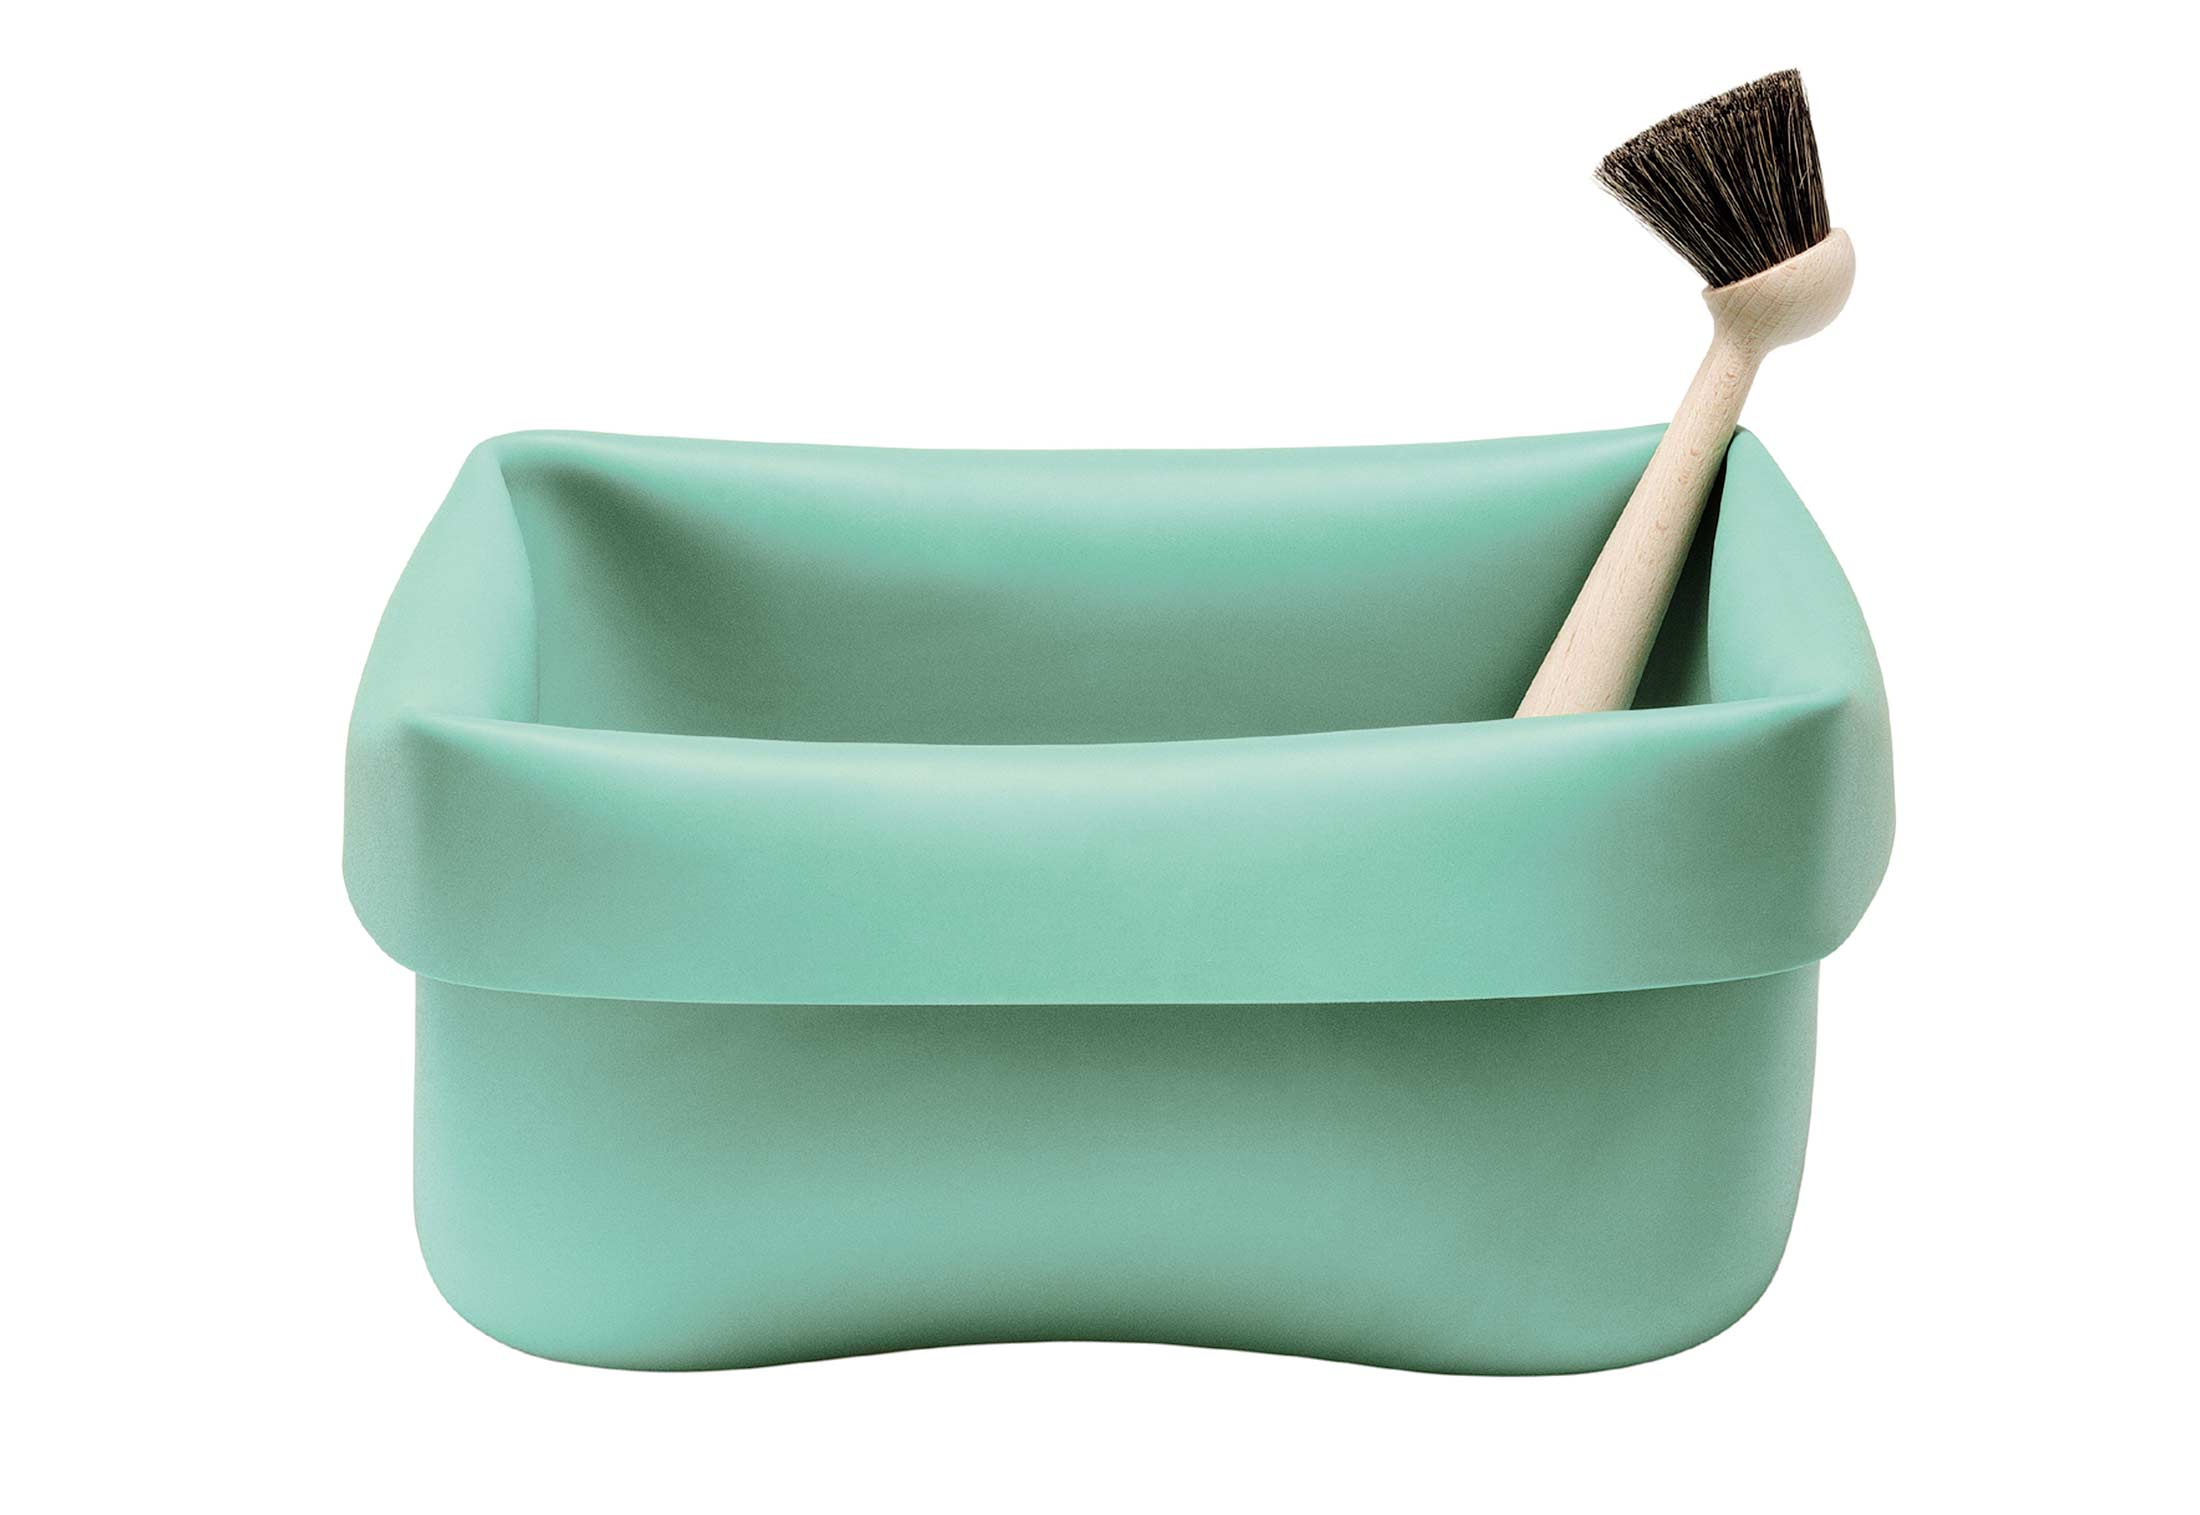 Washing Up Bowl By Normann Copenhagen Stylepark